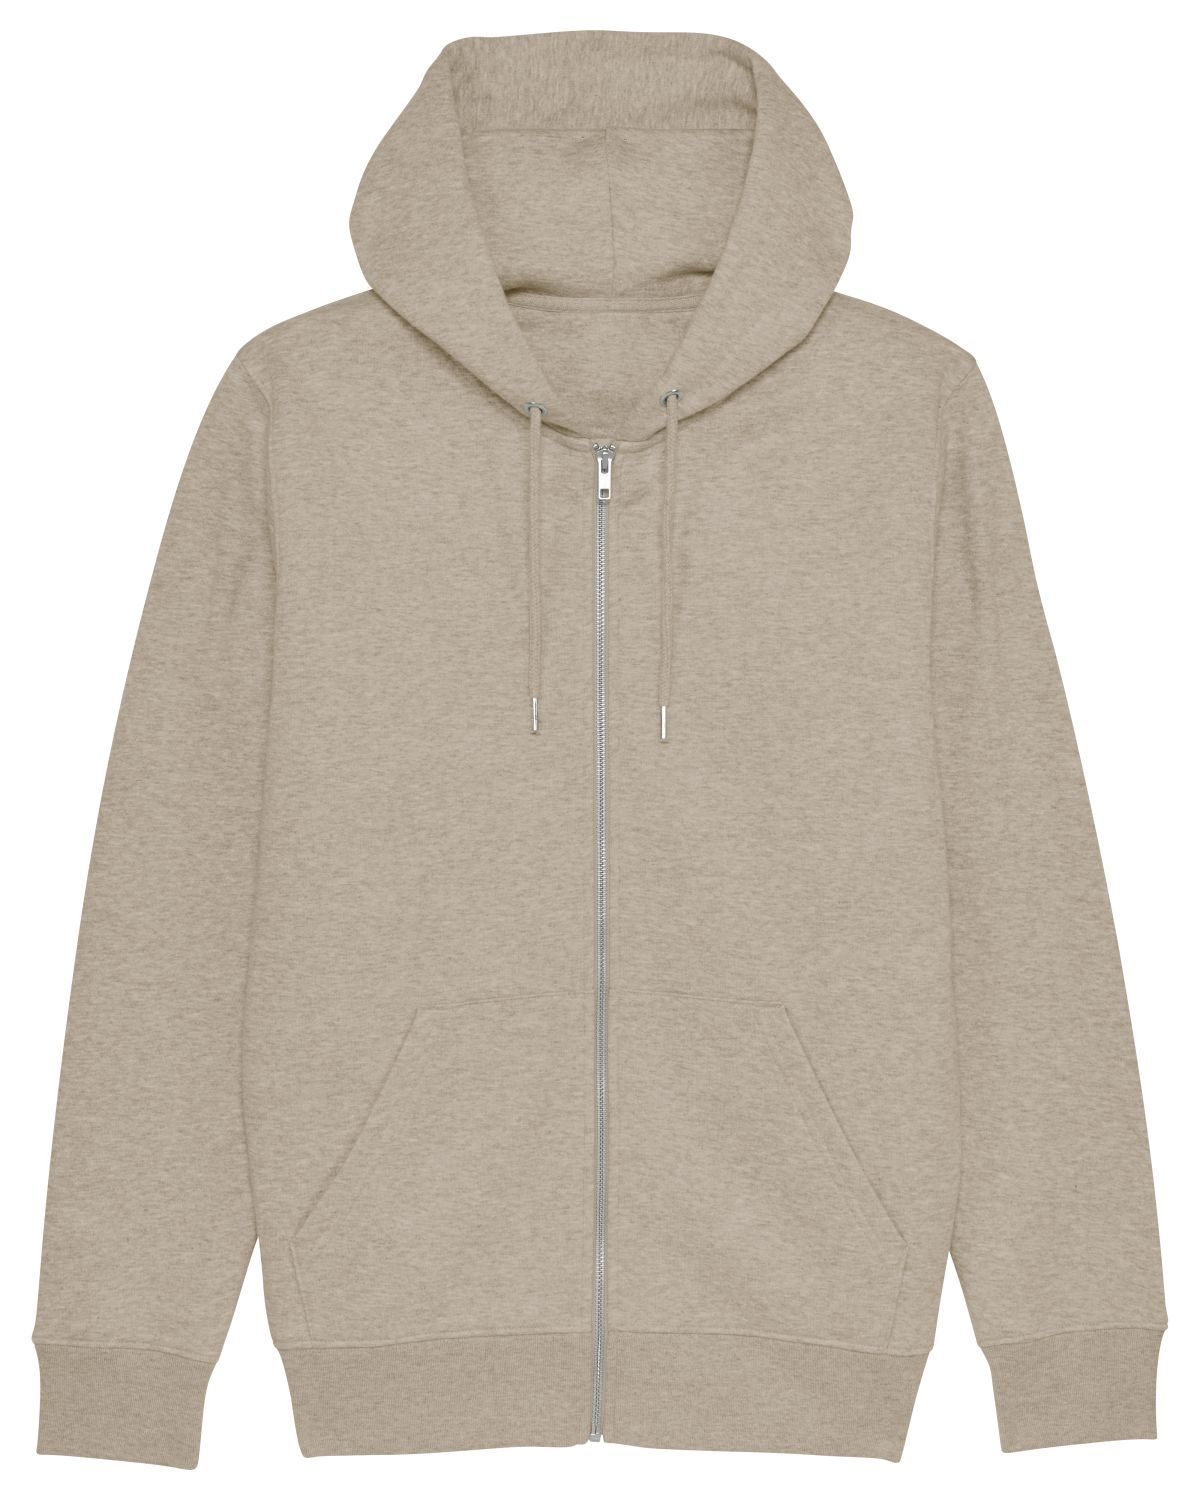 Sweat-shirt zippé capuche homme